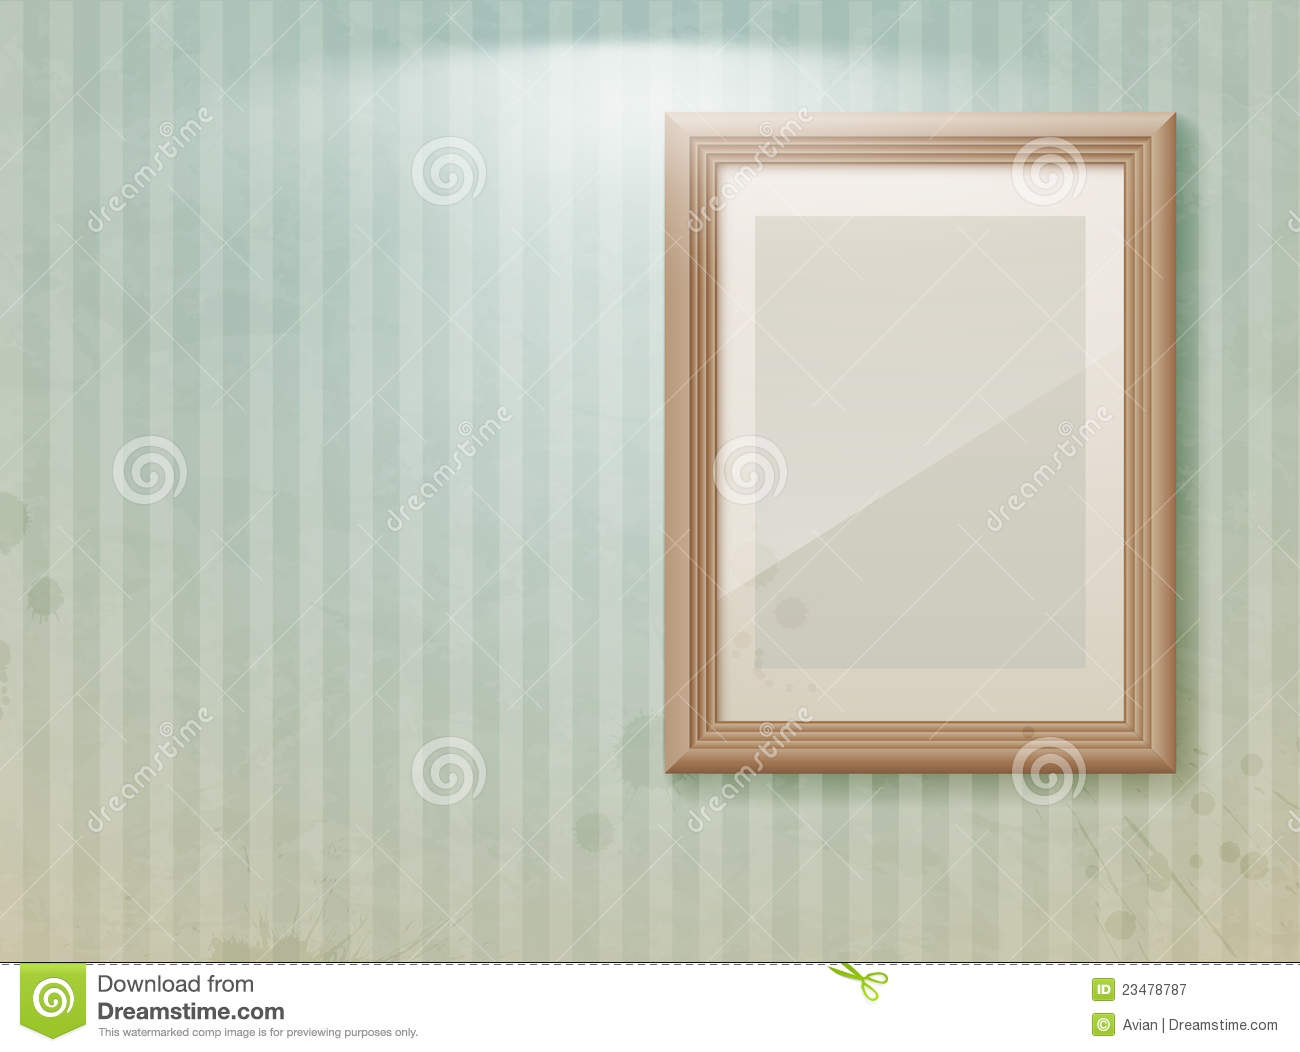 Royalty Free Stock Photography  Empty frame on the wall Empty Picture Frame On Wall